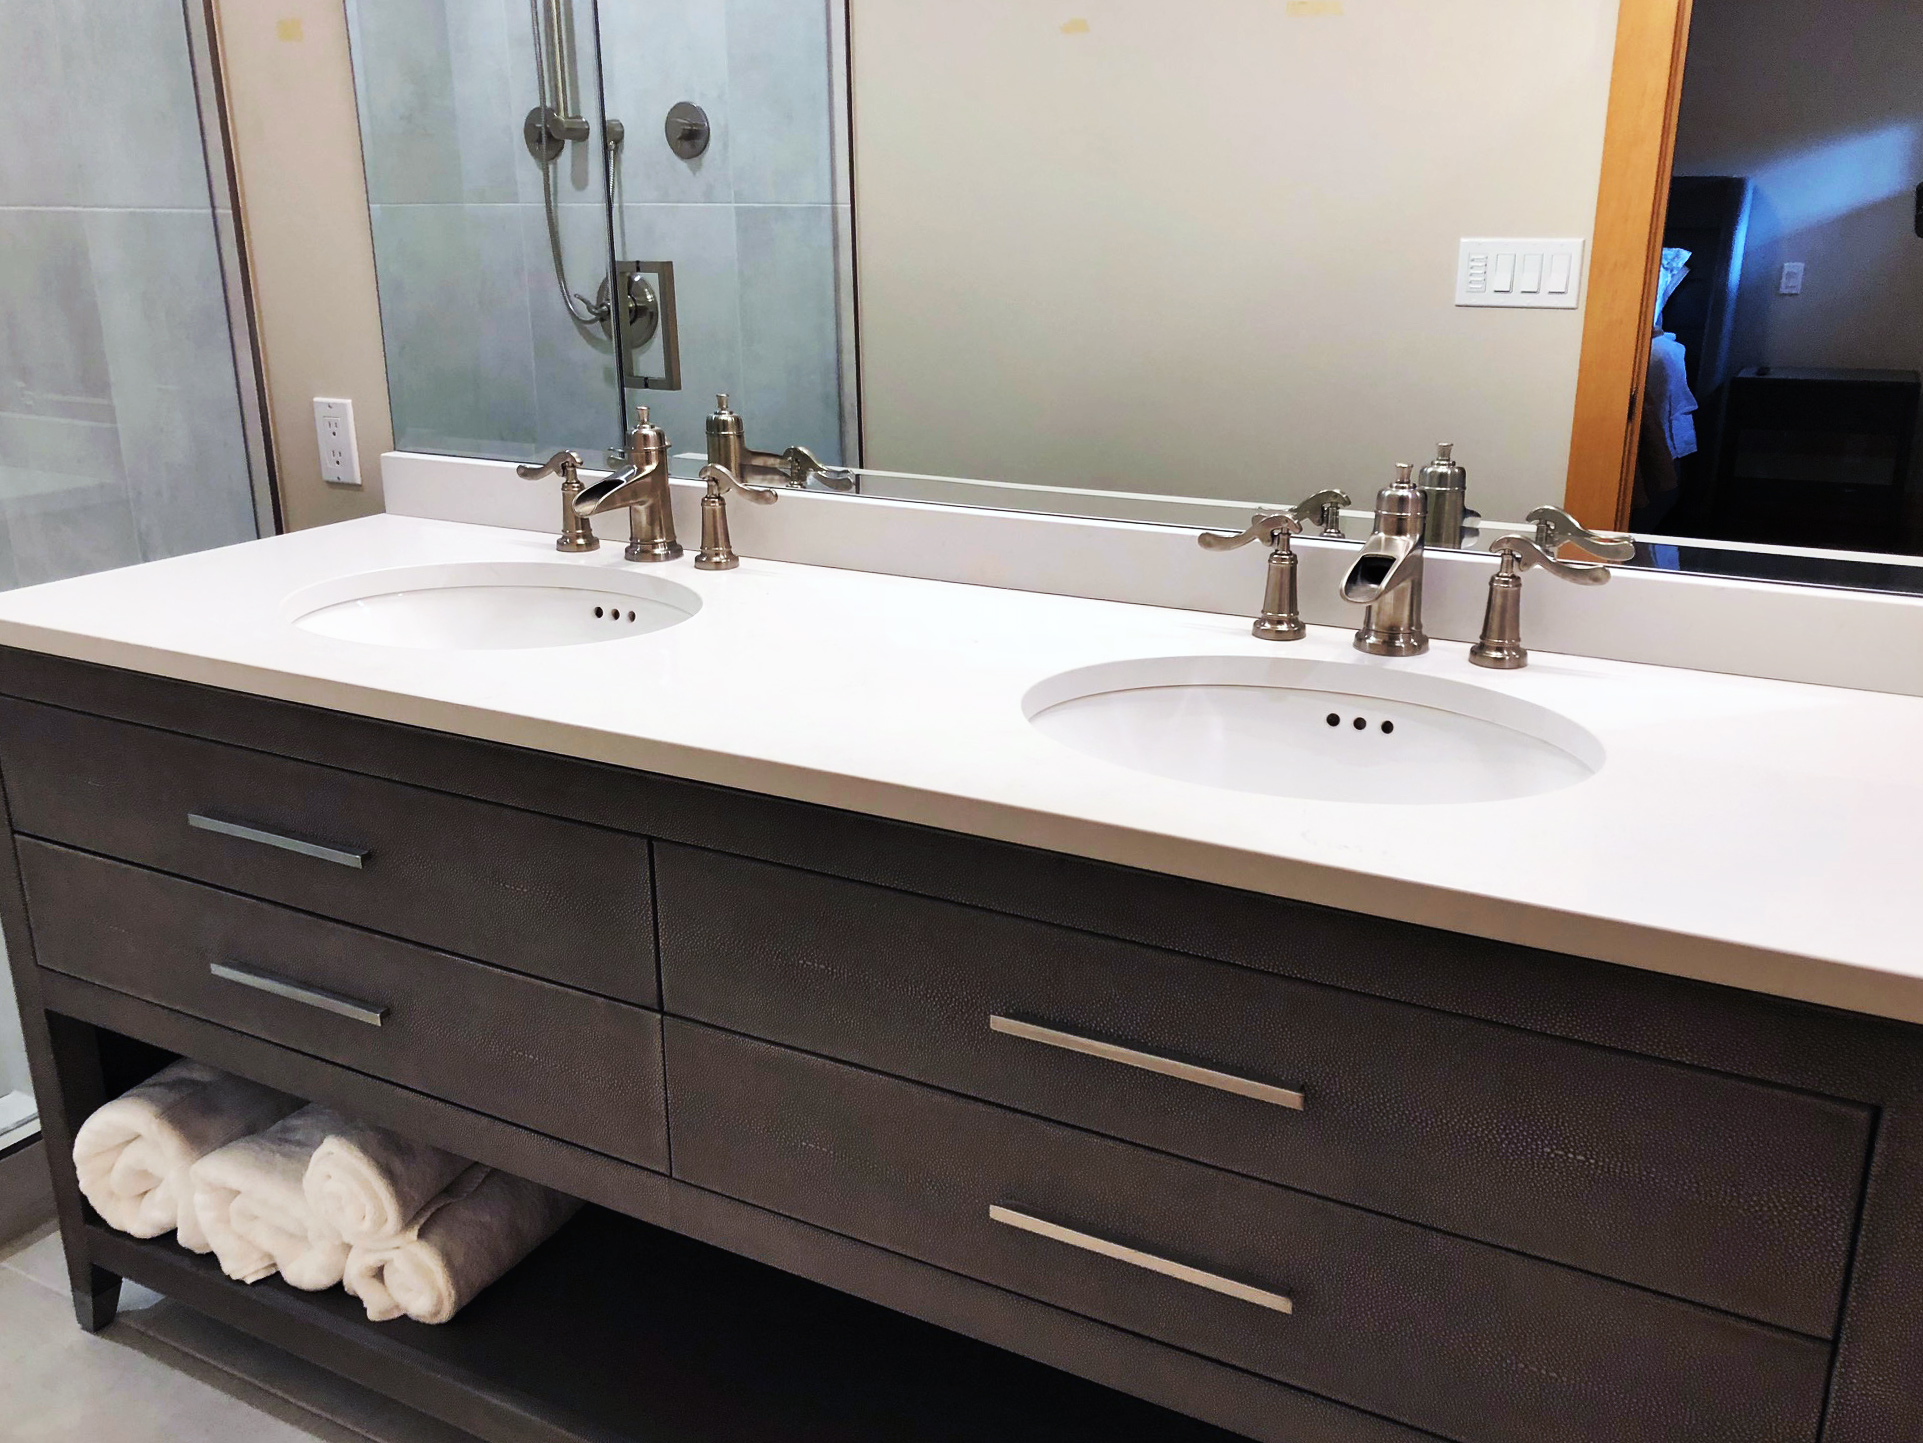 CUSTOM HOMES & RENOVATIONS - We have been performing renovations in Banff, Canmore and the Bow Valley since 1985. We would be glad to discuss your project and offer a free estimate.